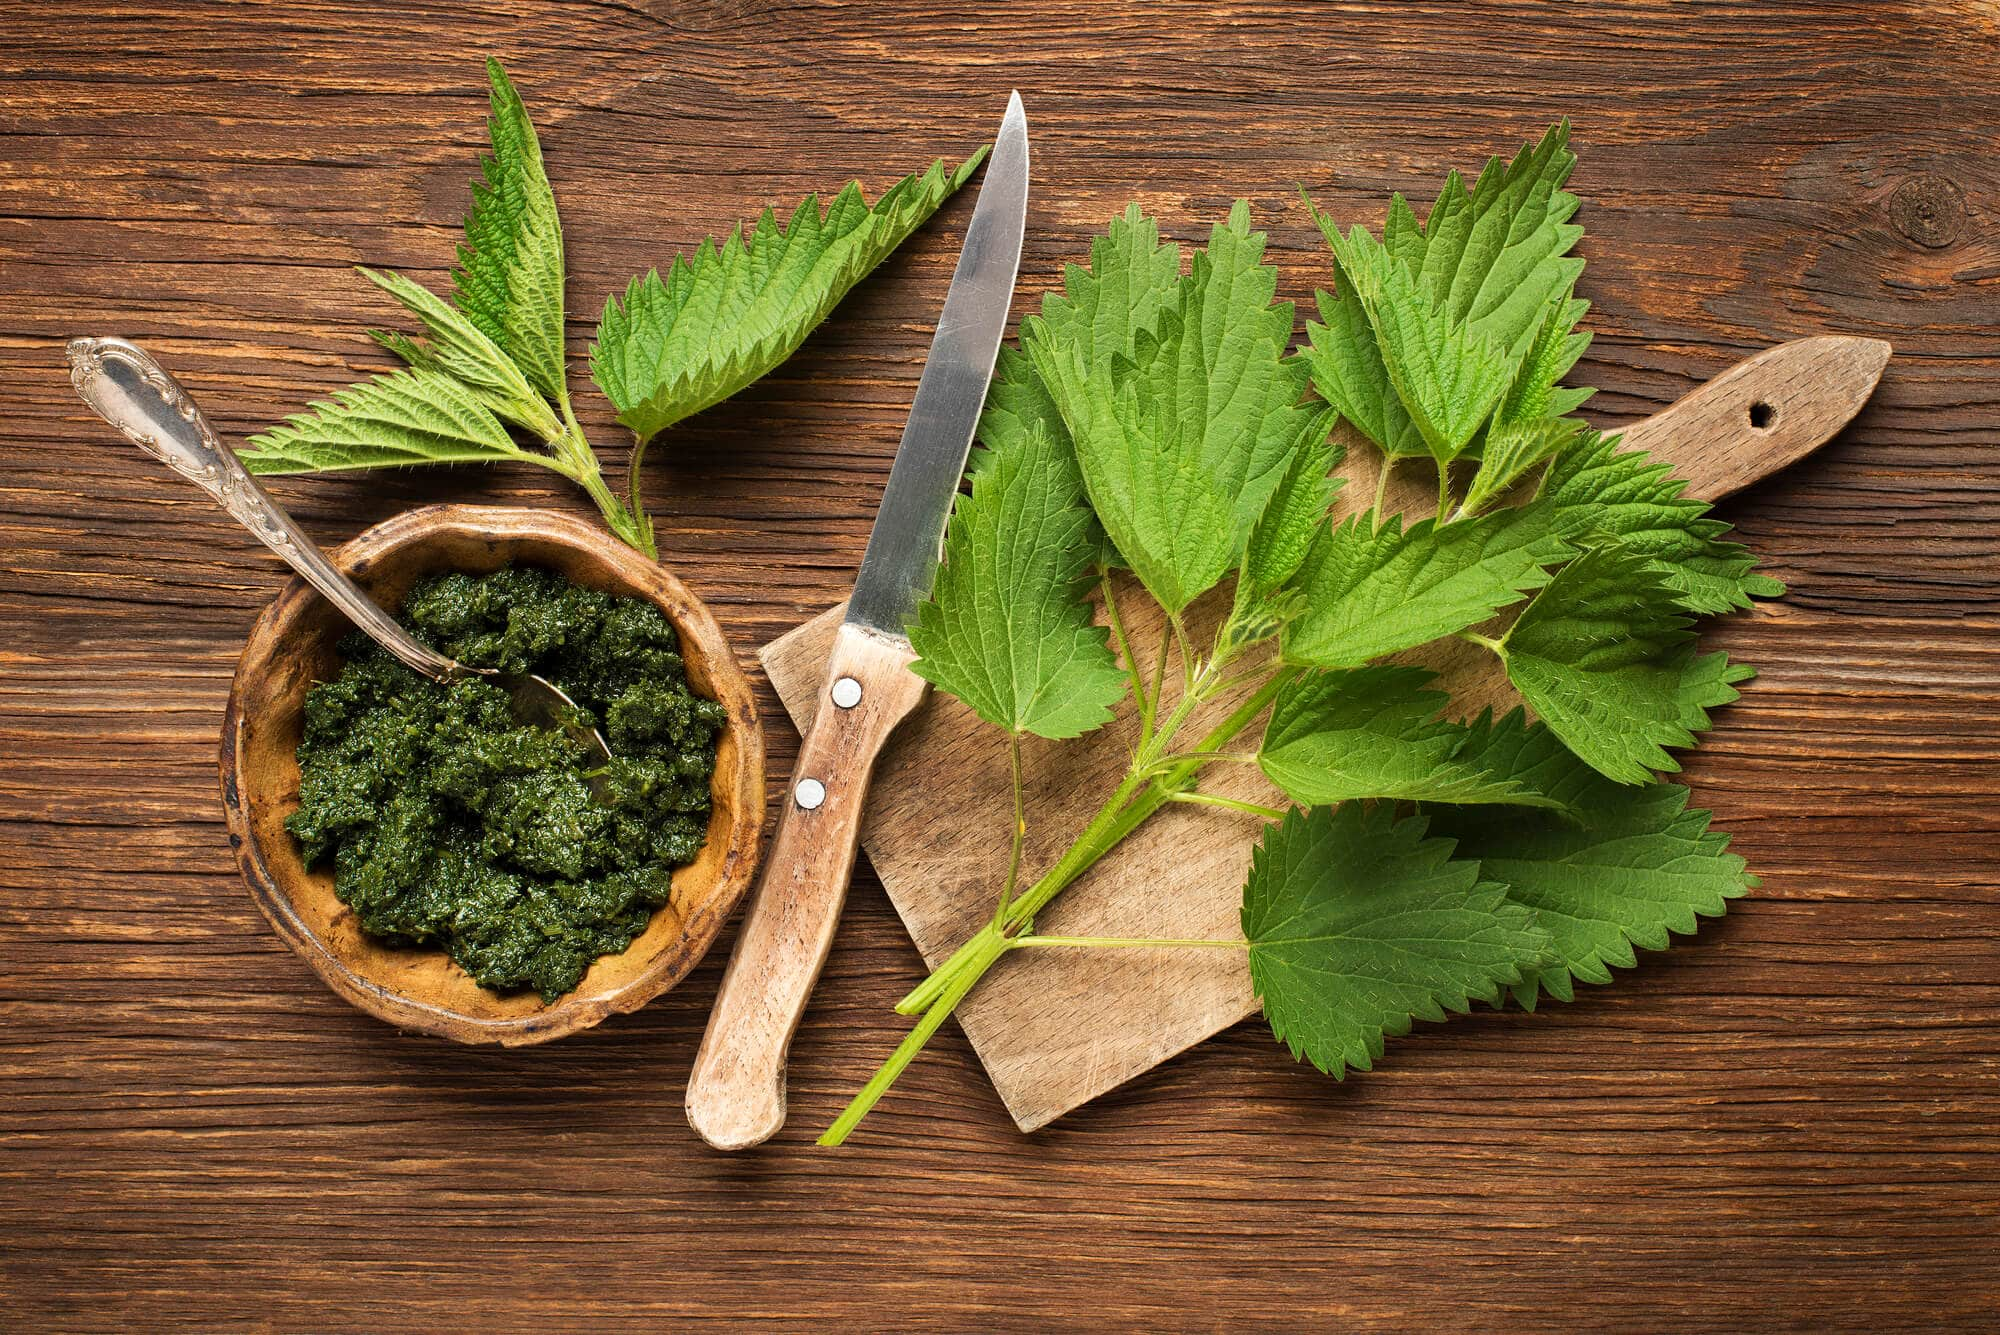 stinging nettles and nettle pesto on a wooden table with a cutting board and knife